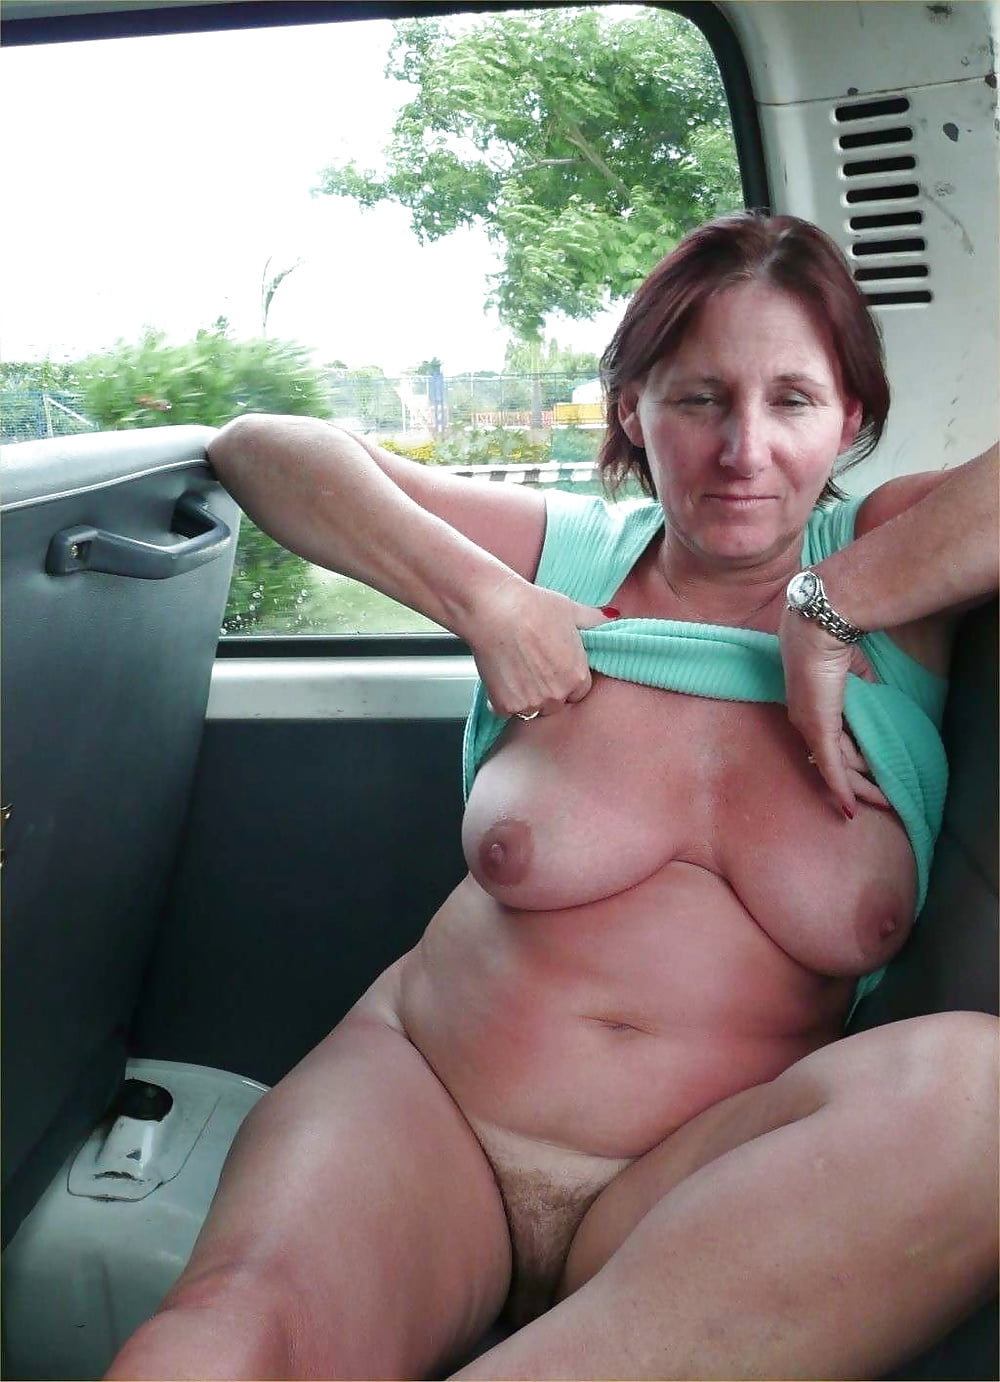 I with my wife flashing in public photo